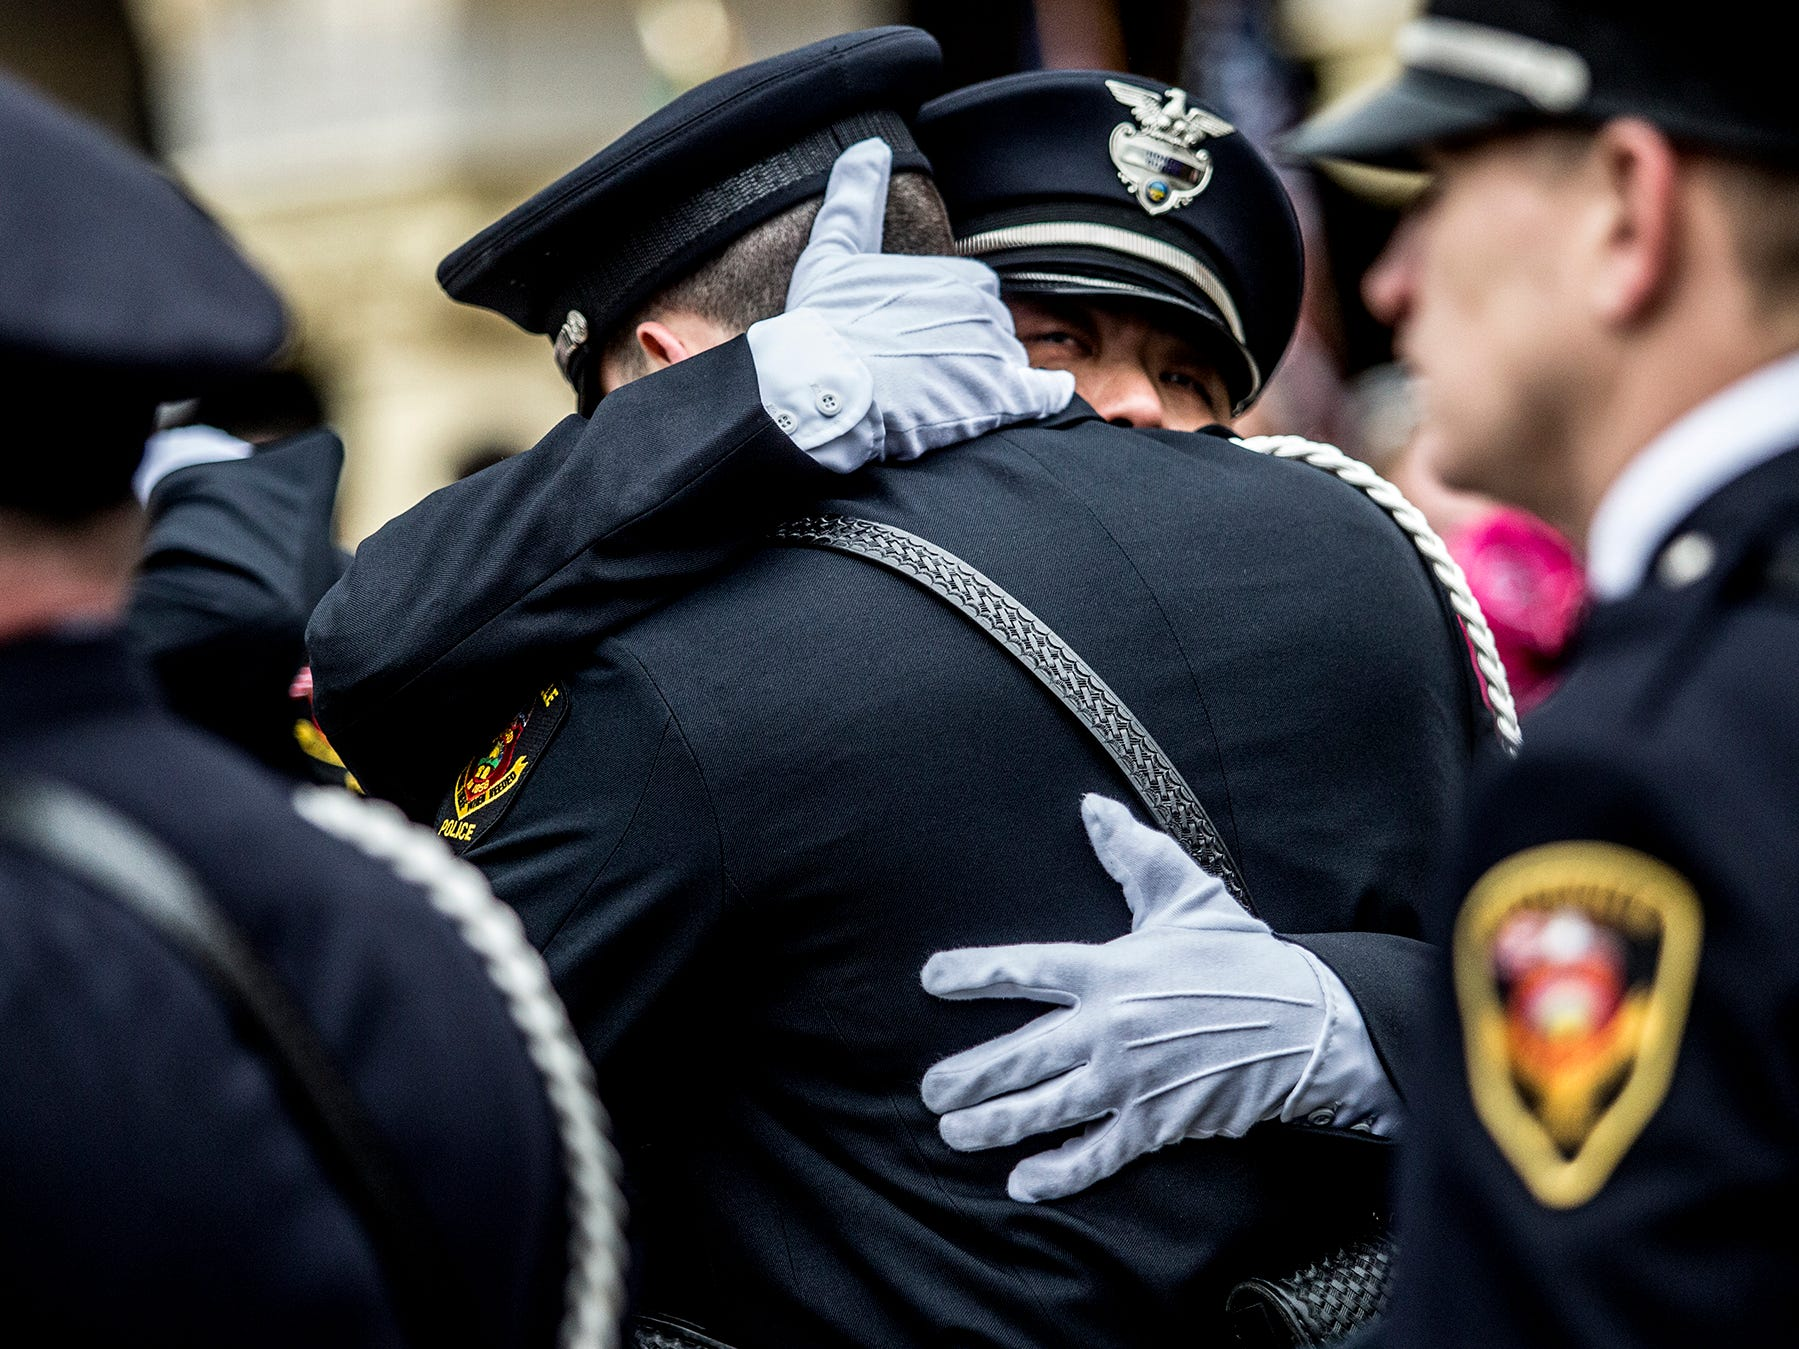 Westerville police officers console each other after attending services for fallen comrades, Eric Joering and Anthony Morelli. Last weekend Westerville officers Joering and Morelli were killed in the line of duty while responding to s domestic violence call.